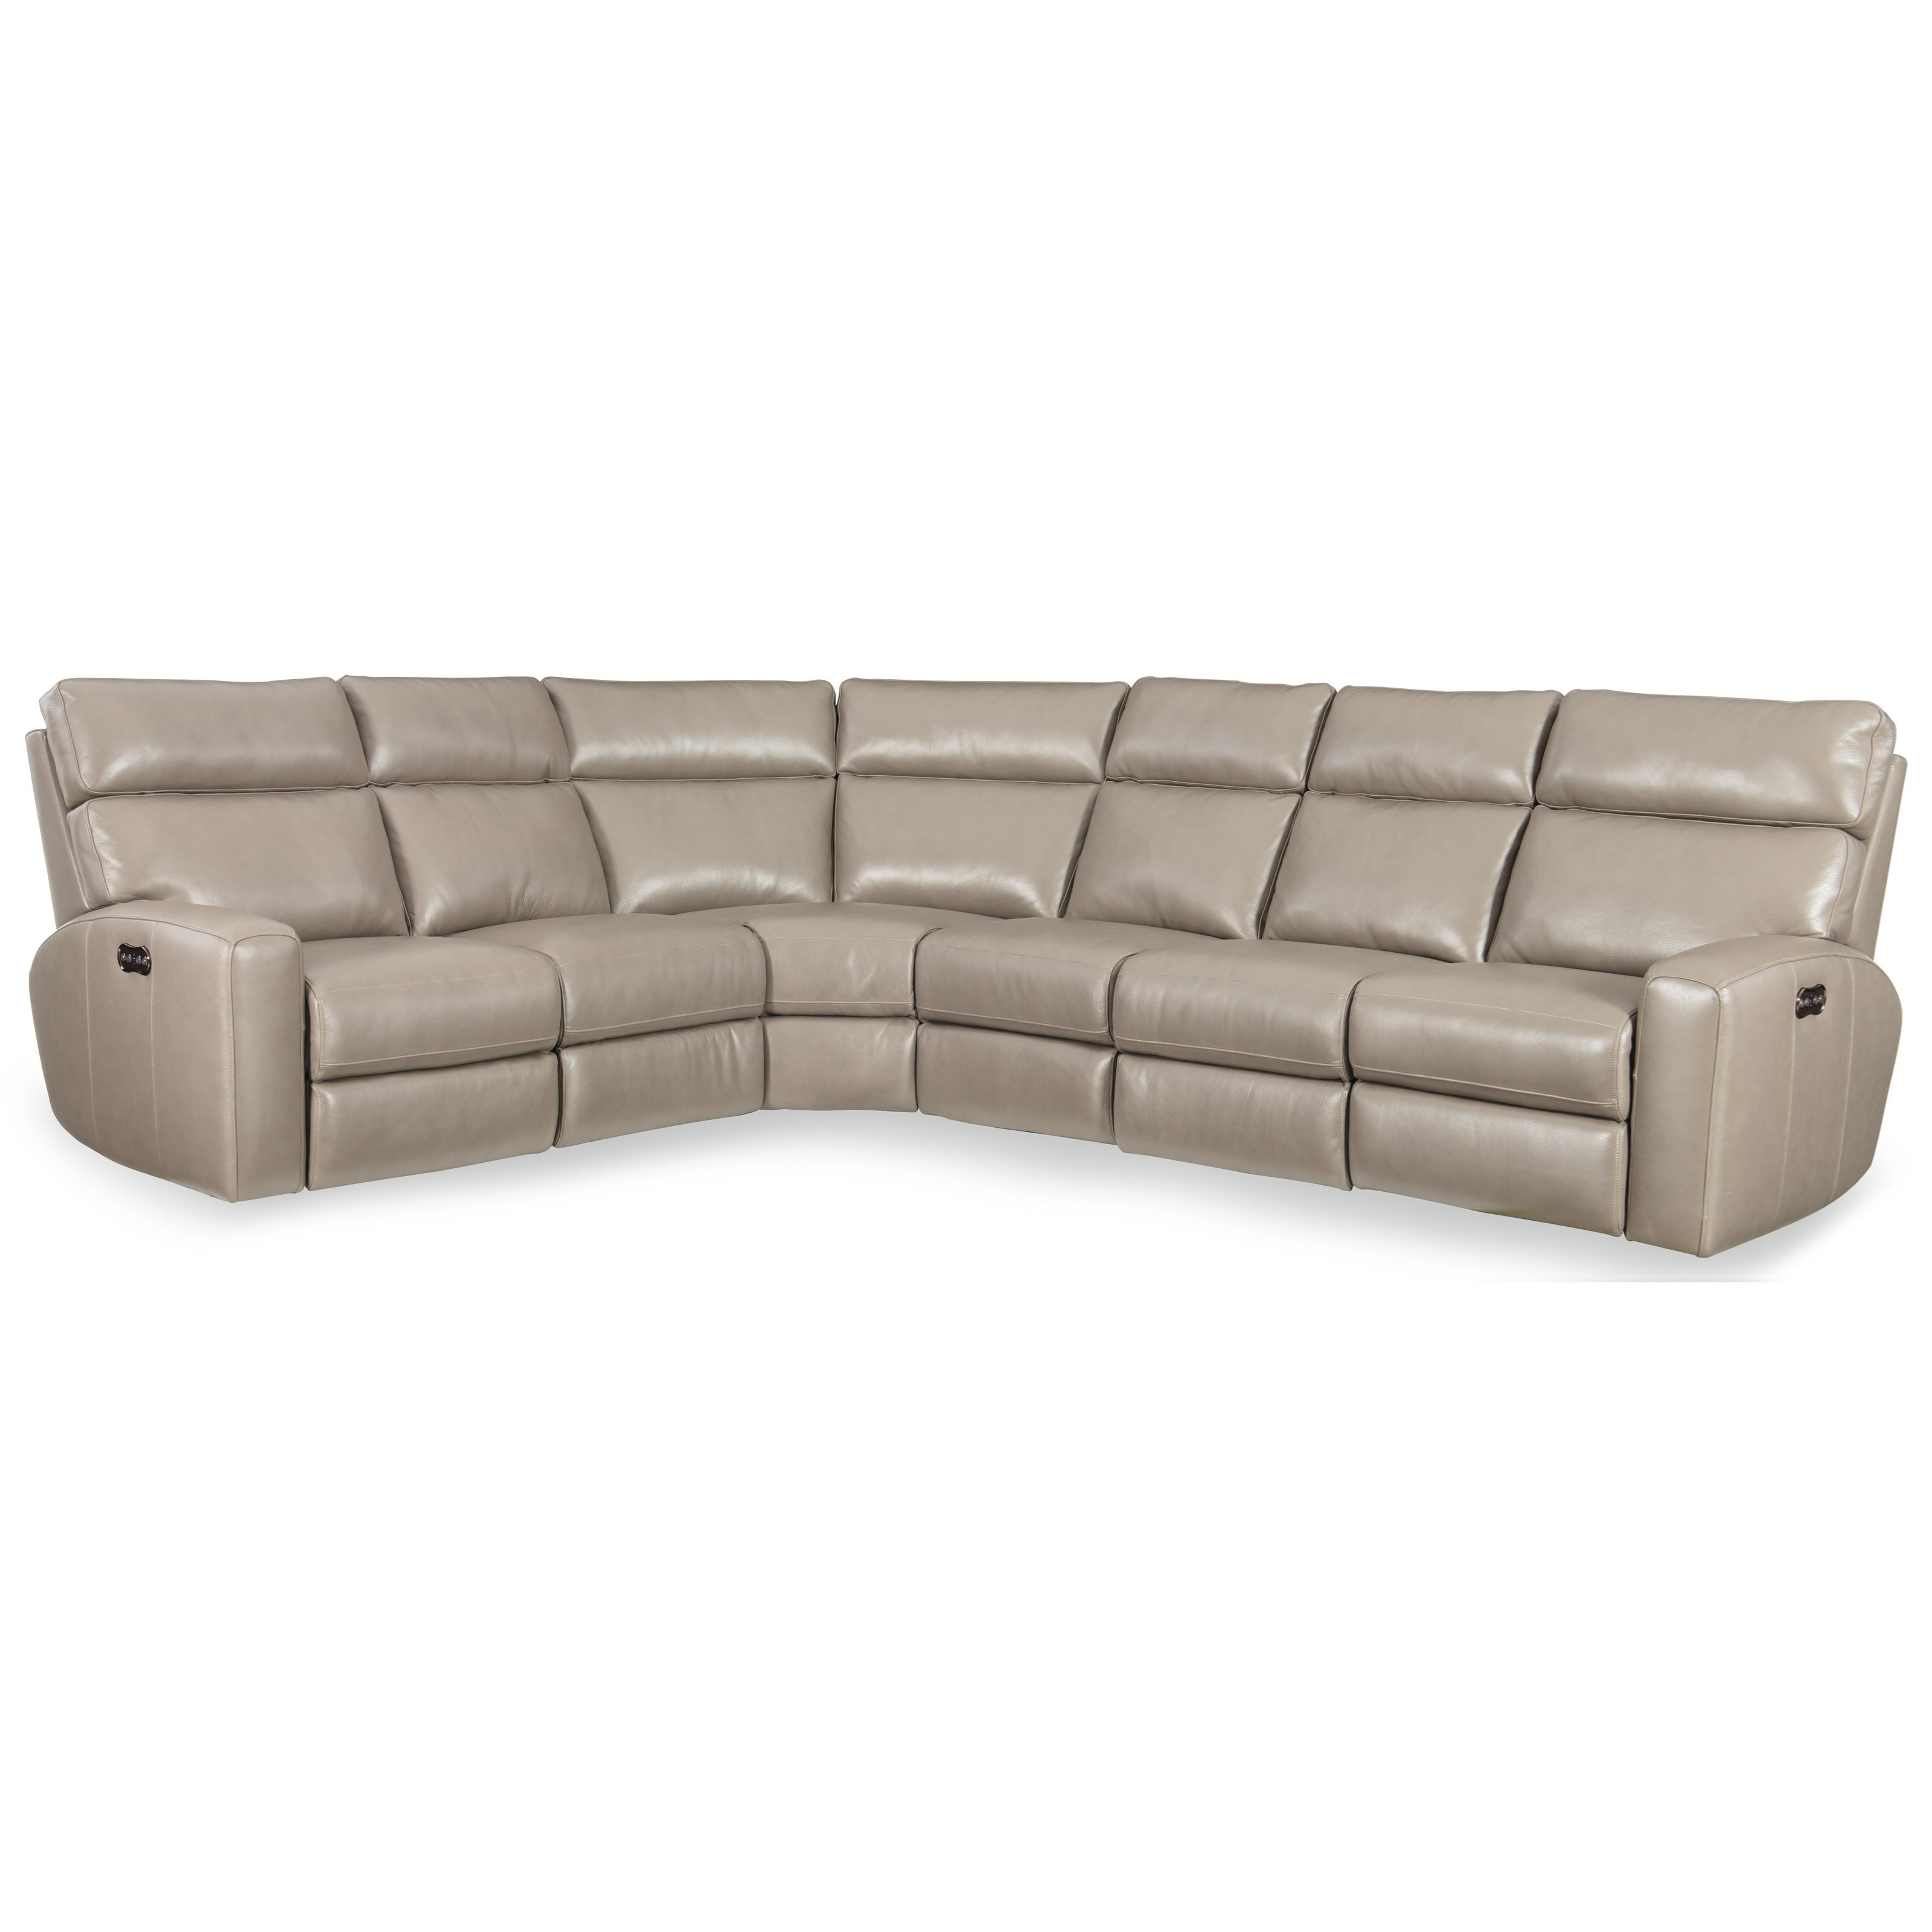 Mowry 4 PC Pwr Motion Sectional w/ Pwr Hdrest by Hooker Furniture at Alison Craig Home Furnishings